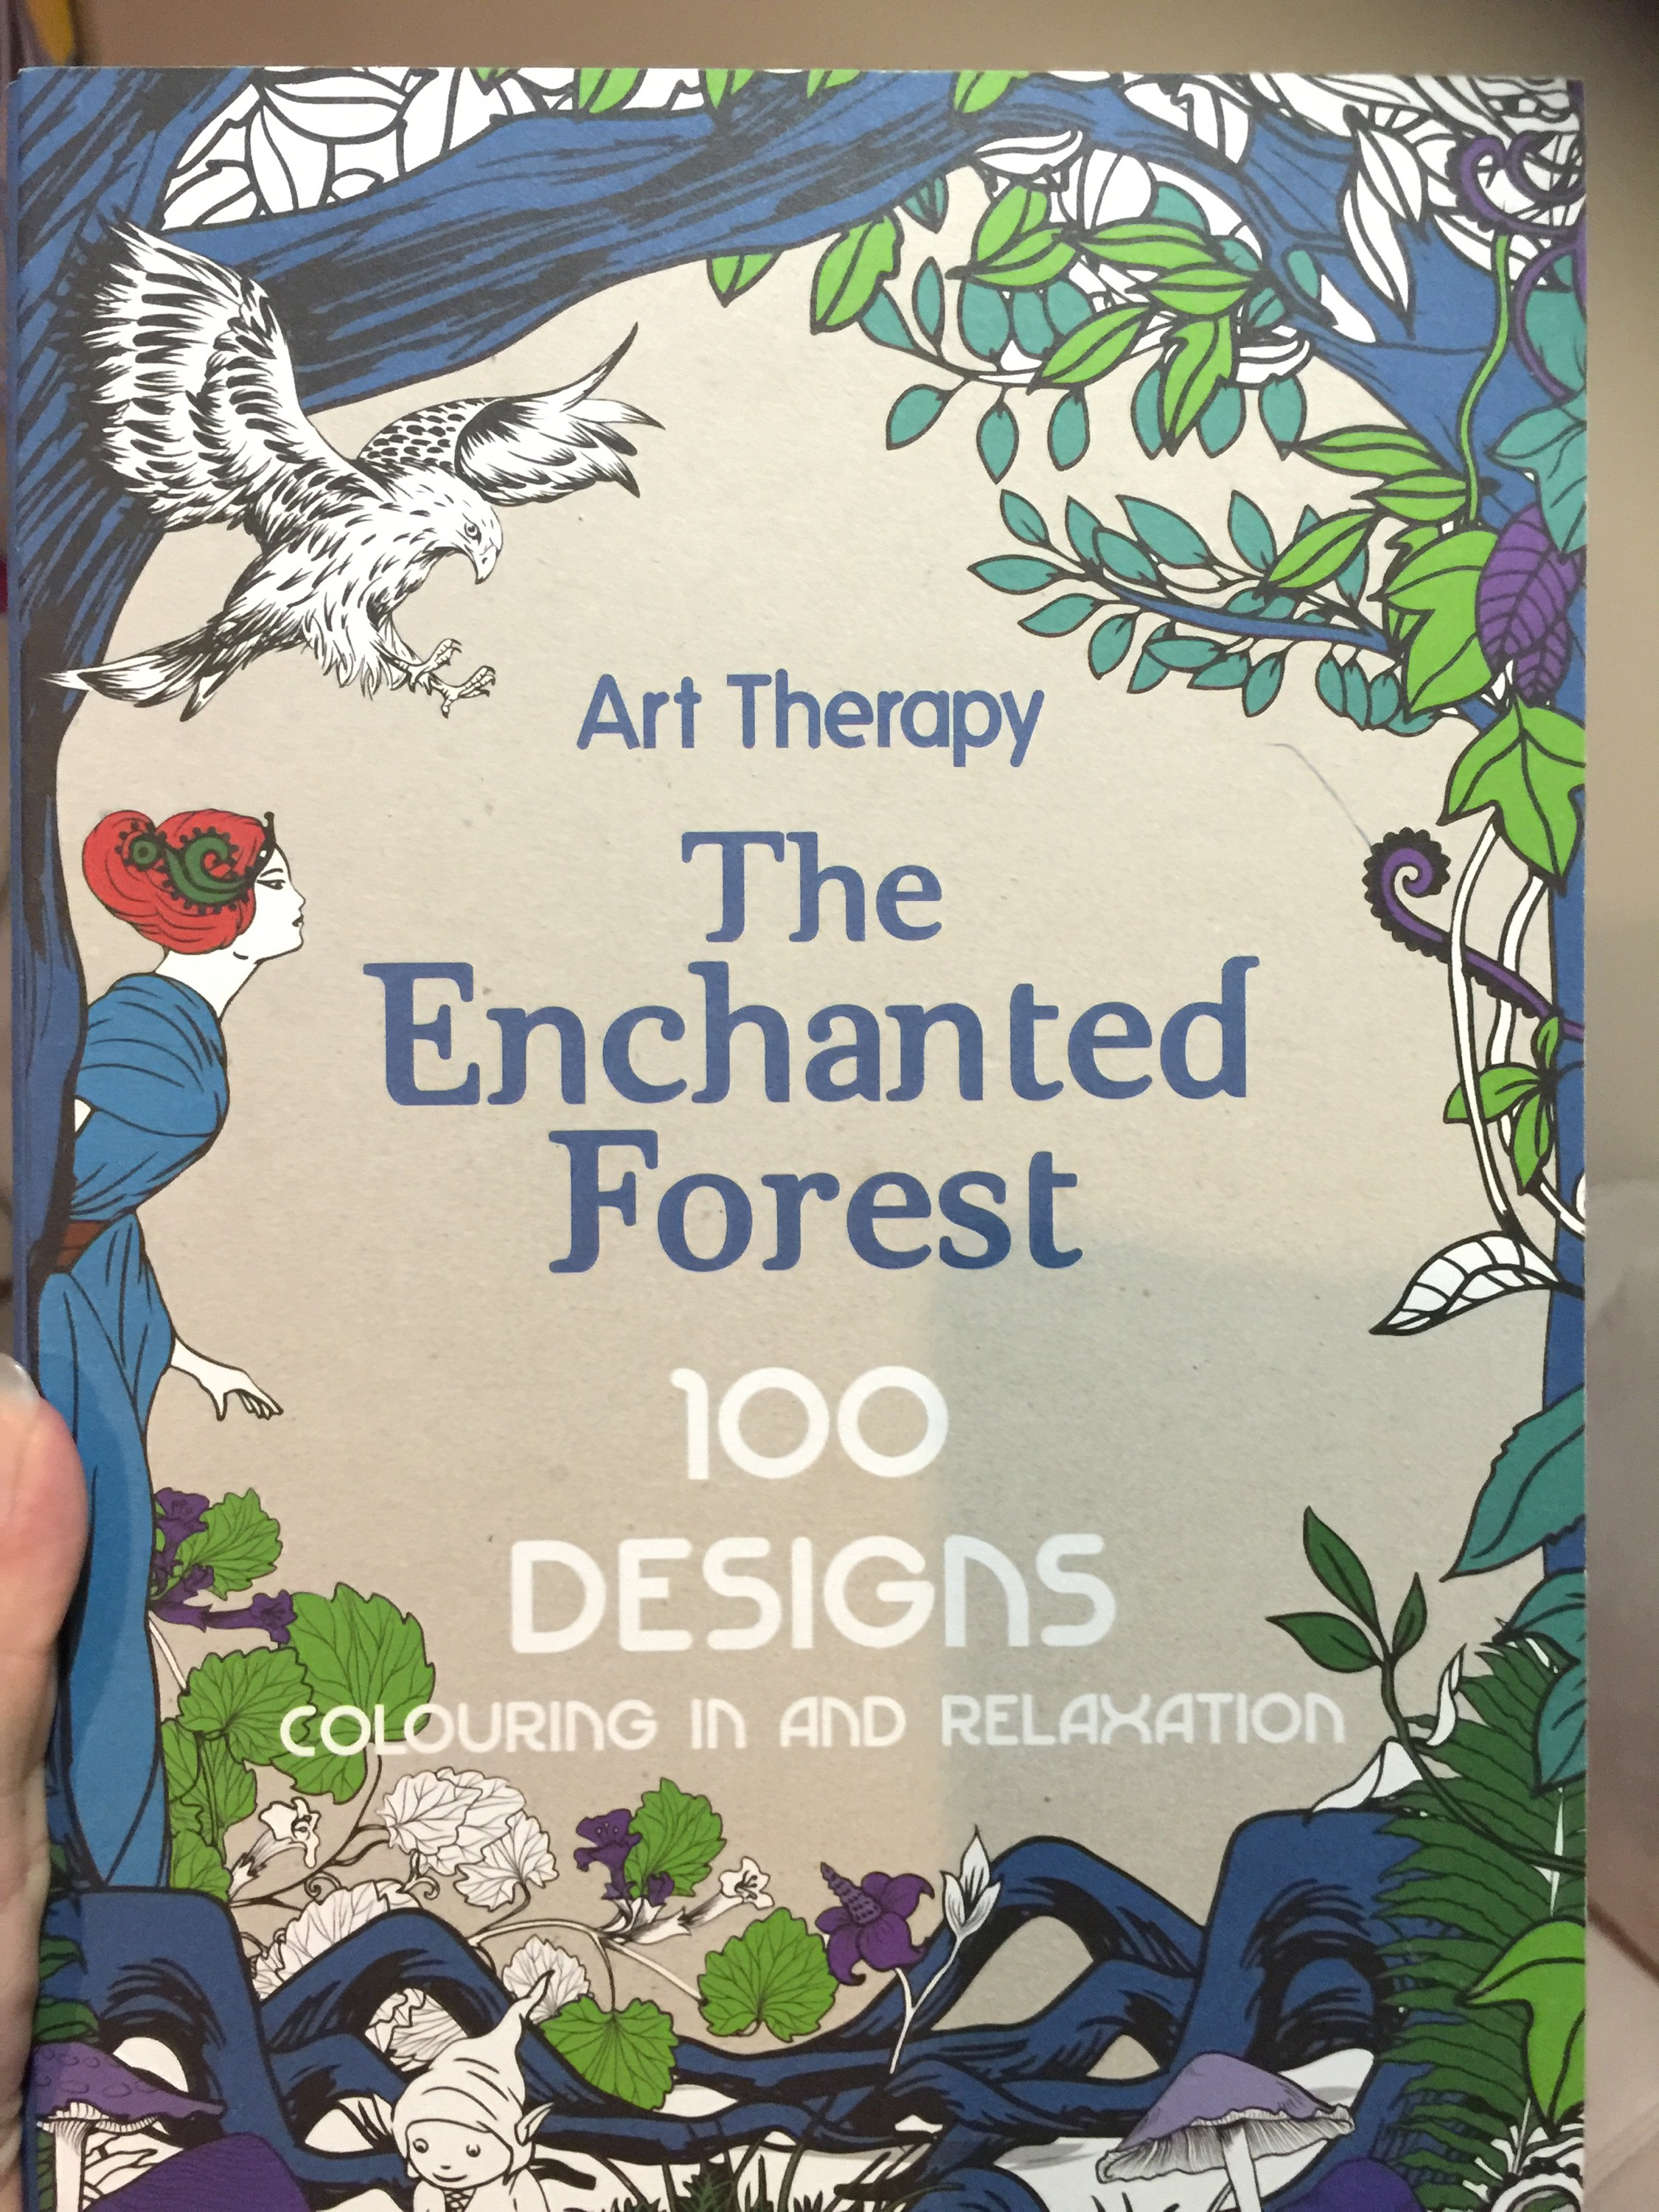 enchanted forest coloring colouring color coloured pencils mindfulness reviews art art therapy stress relief adult coloring